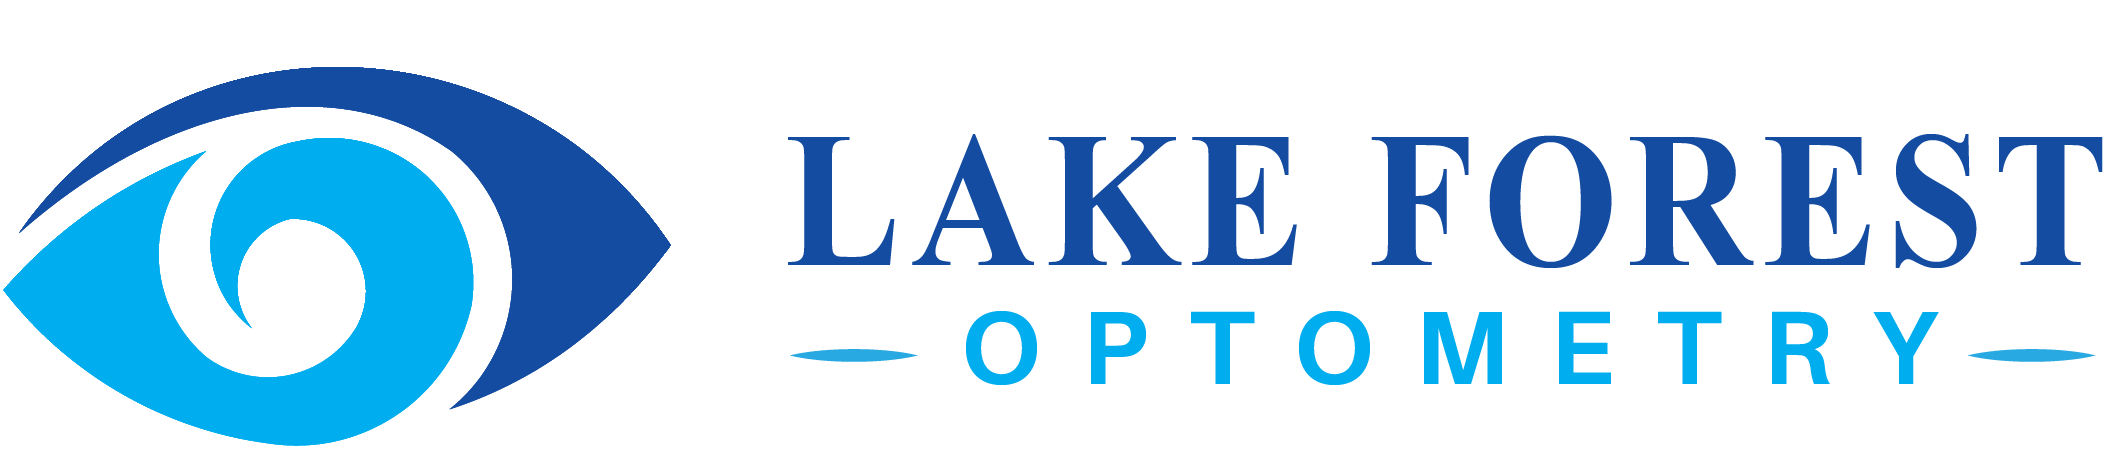 Lake Forest Optometry